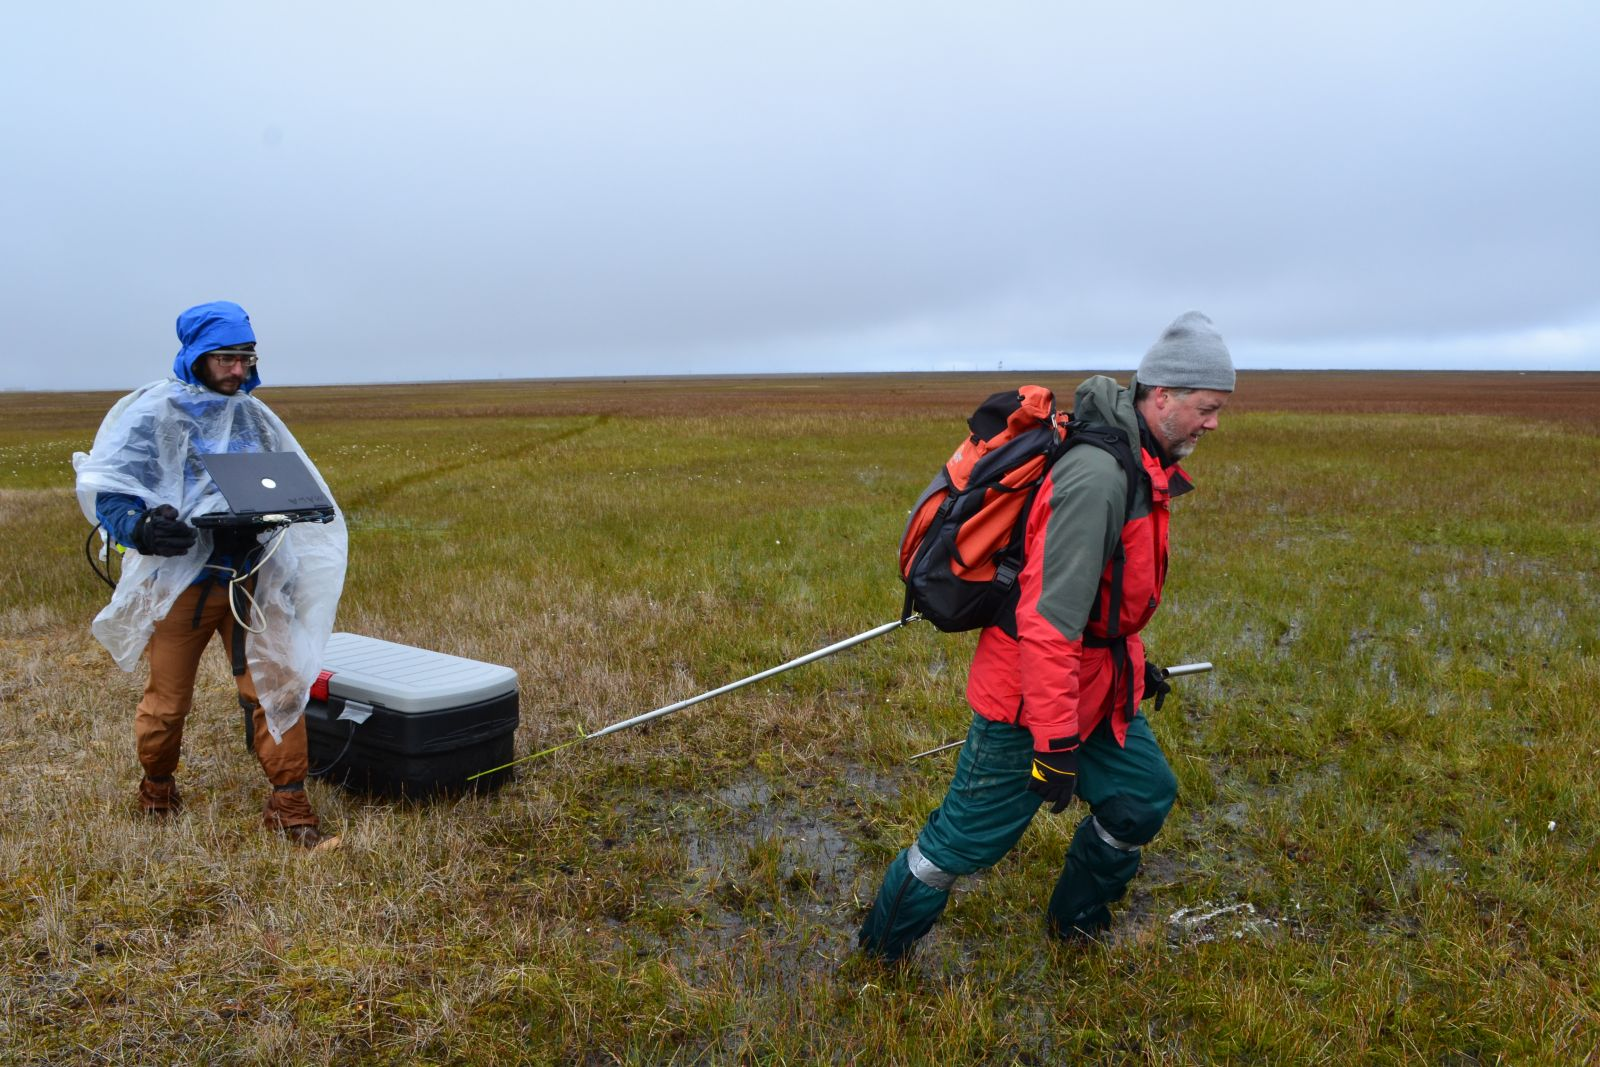 Kevin Schaefer (right) pulls a ground penetrating radar unit through the tundra near Barrow while Andrew Parsekian records the thaw depth on a computer.